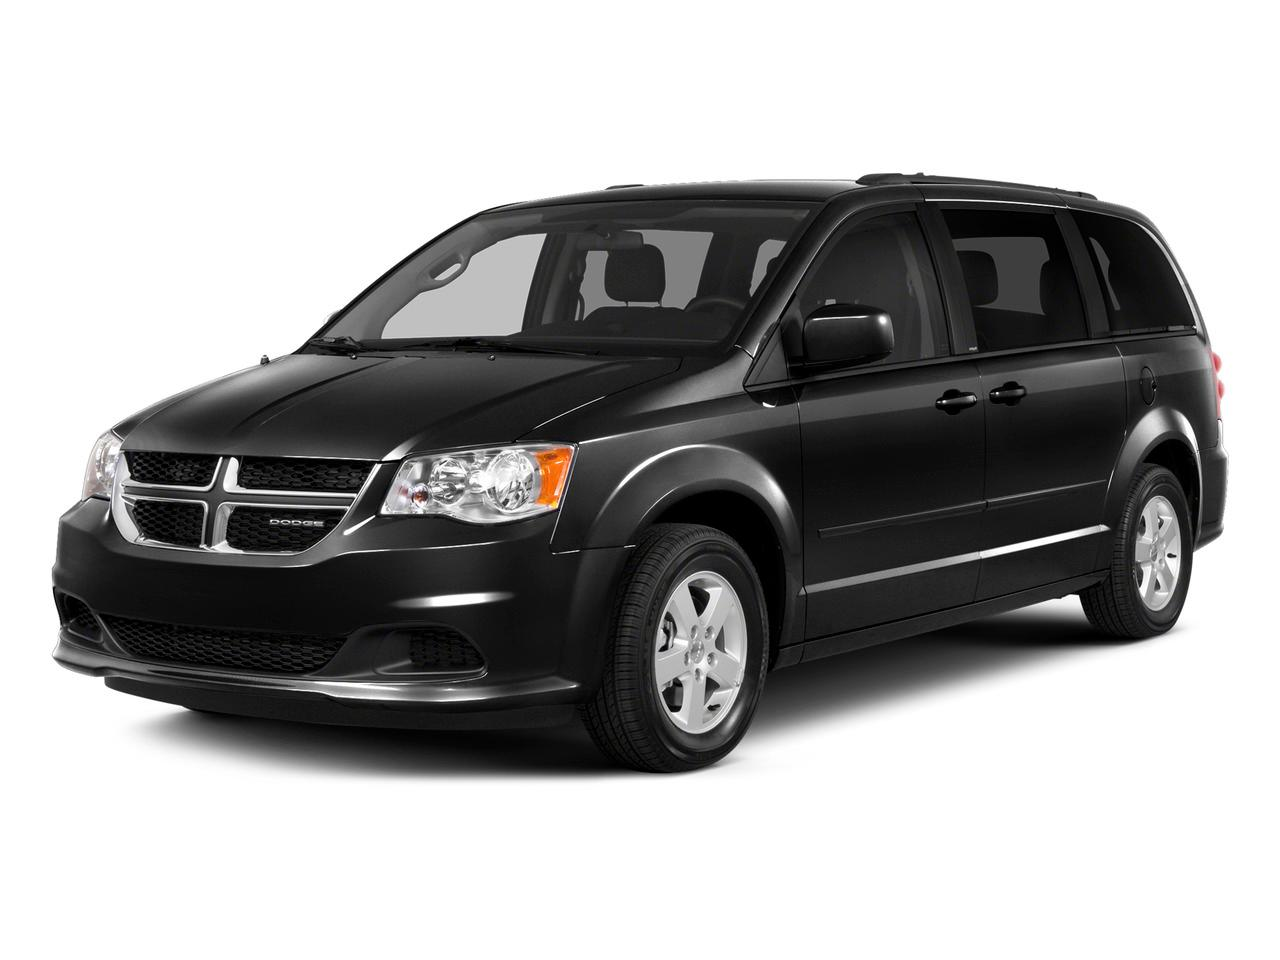 2015 Dodge Grand Caravan Vehicle Photo in Manassas, VA 20109